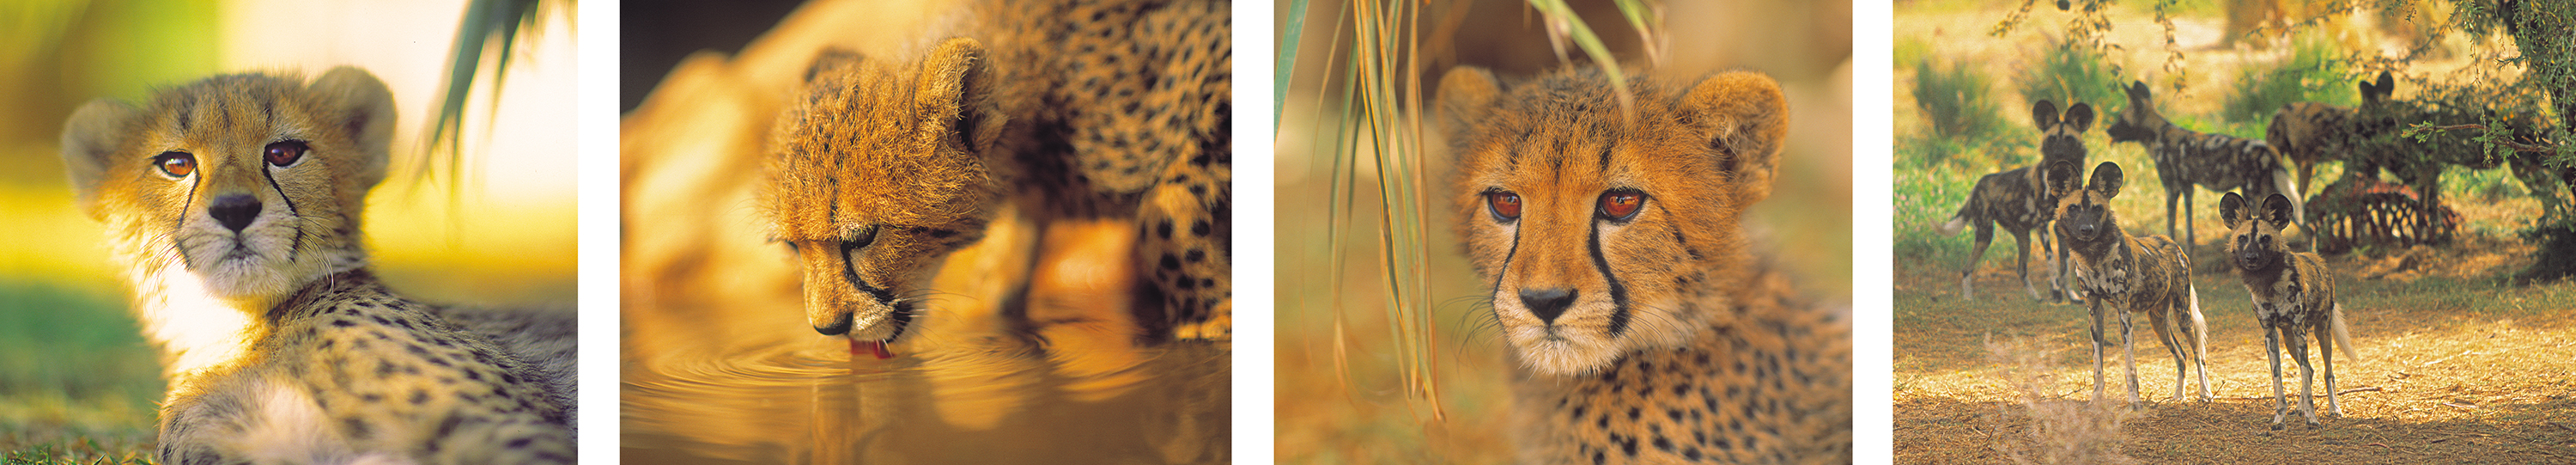 cheetah-cubs-by-philip-lane-photography